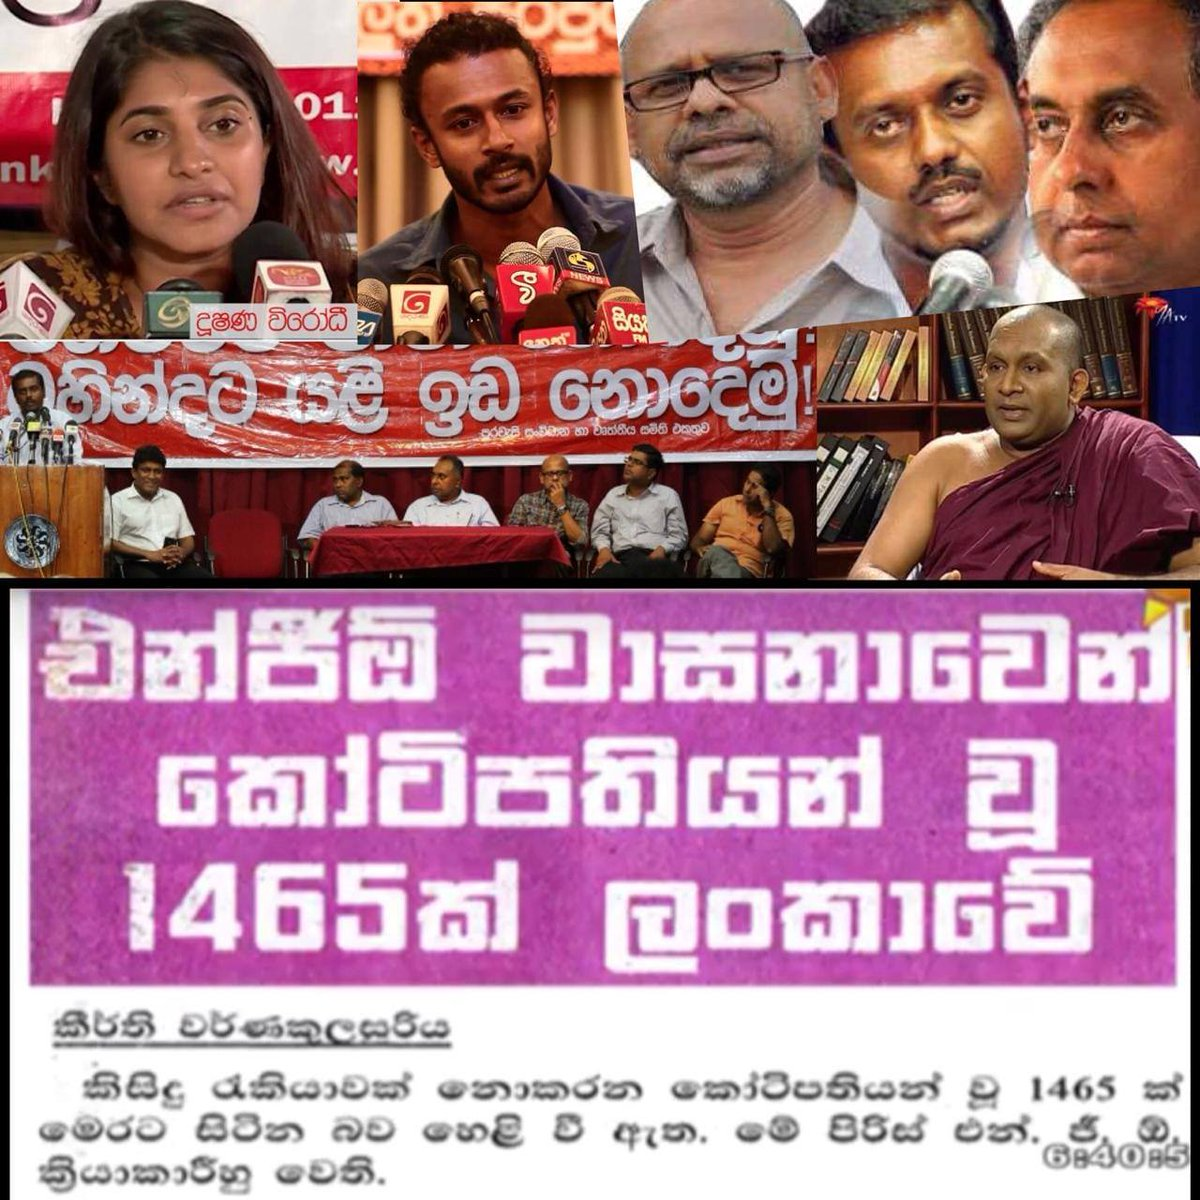 Who are these 1465 TRAITORS???